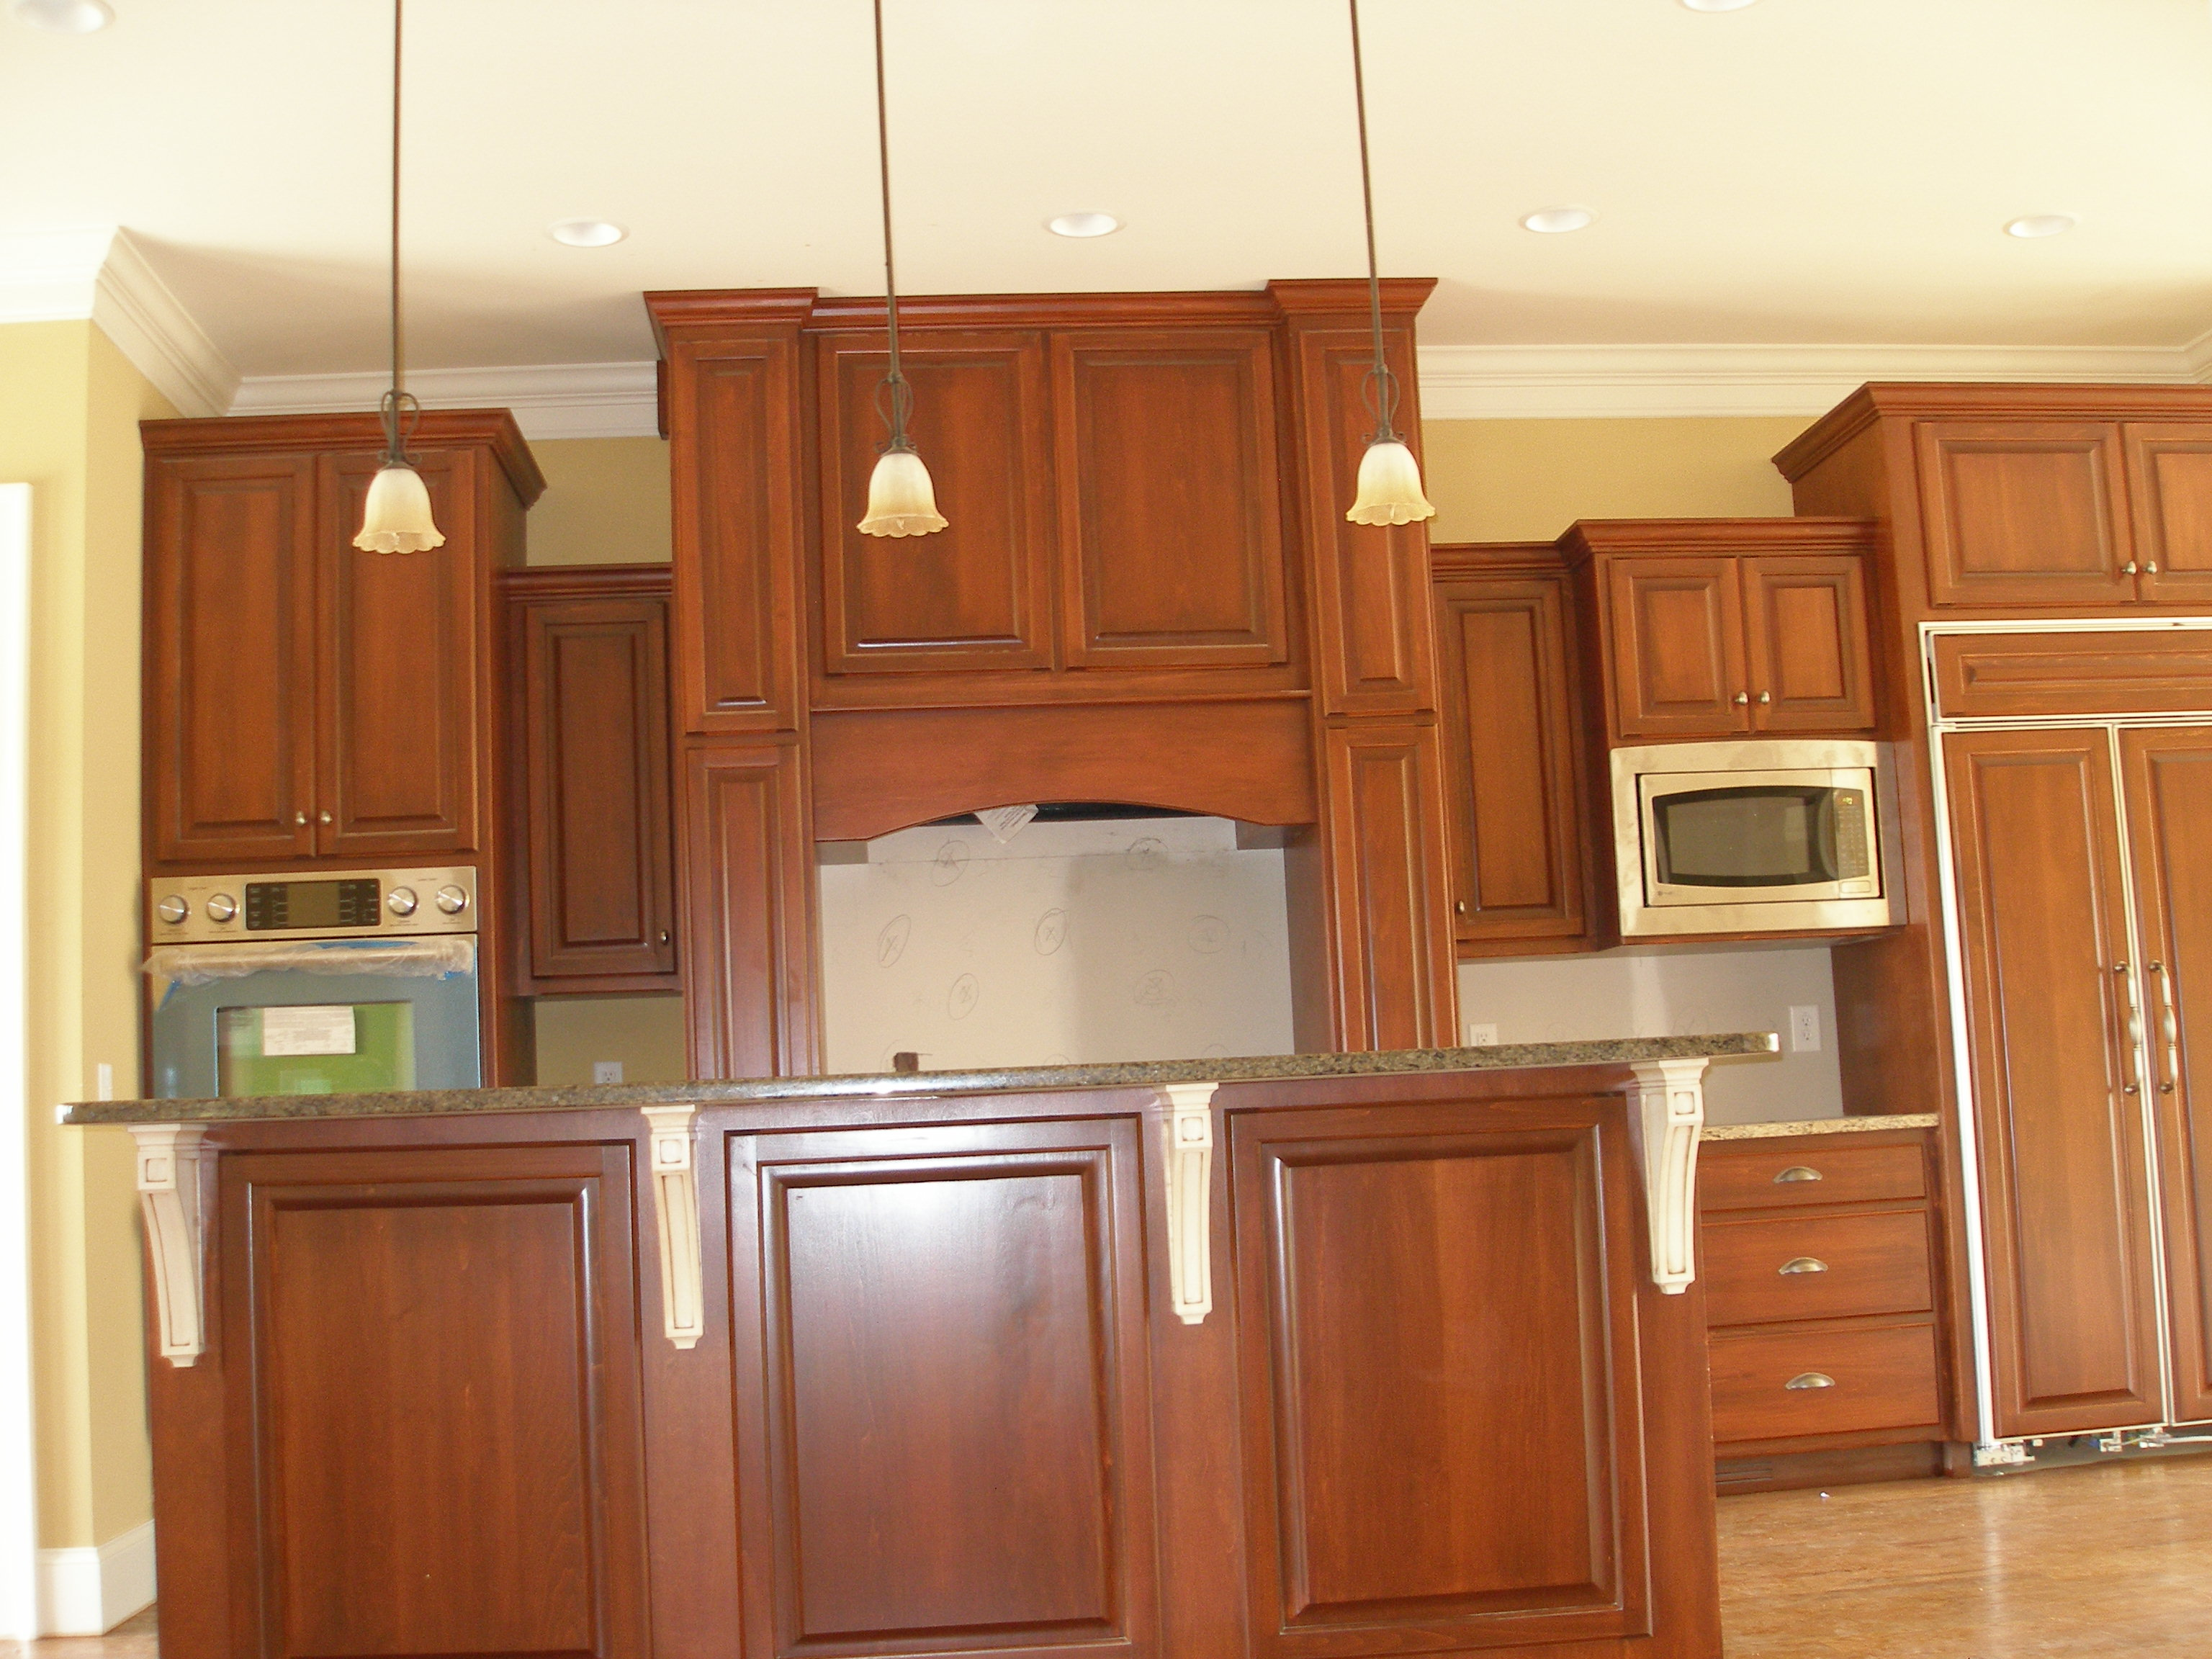 Custom kitchen american woodmark cabinets in peru with granite countertop and oven plus chandelier for kitchen decor ideas